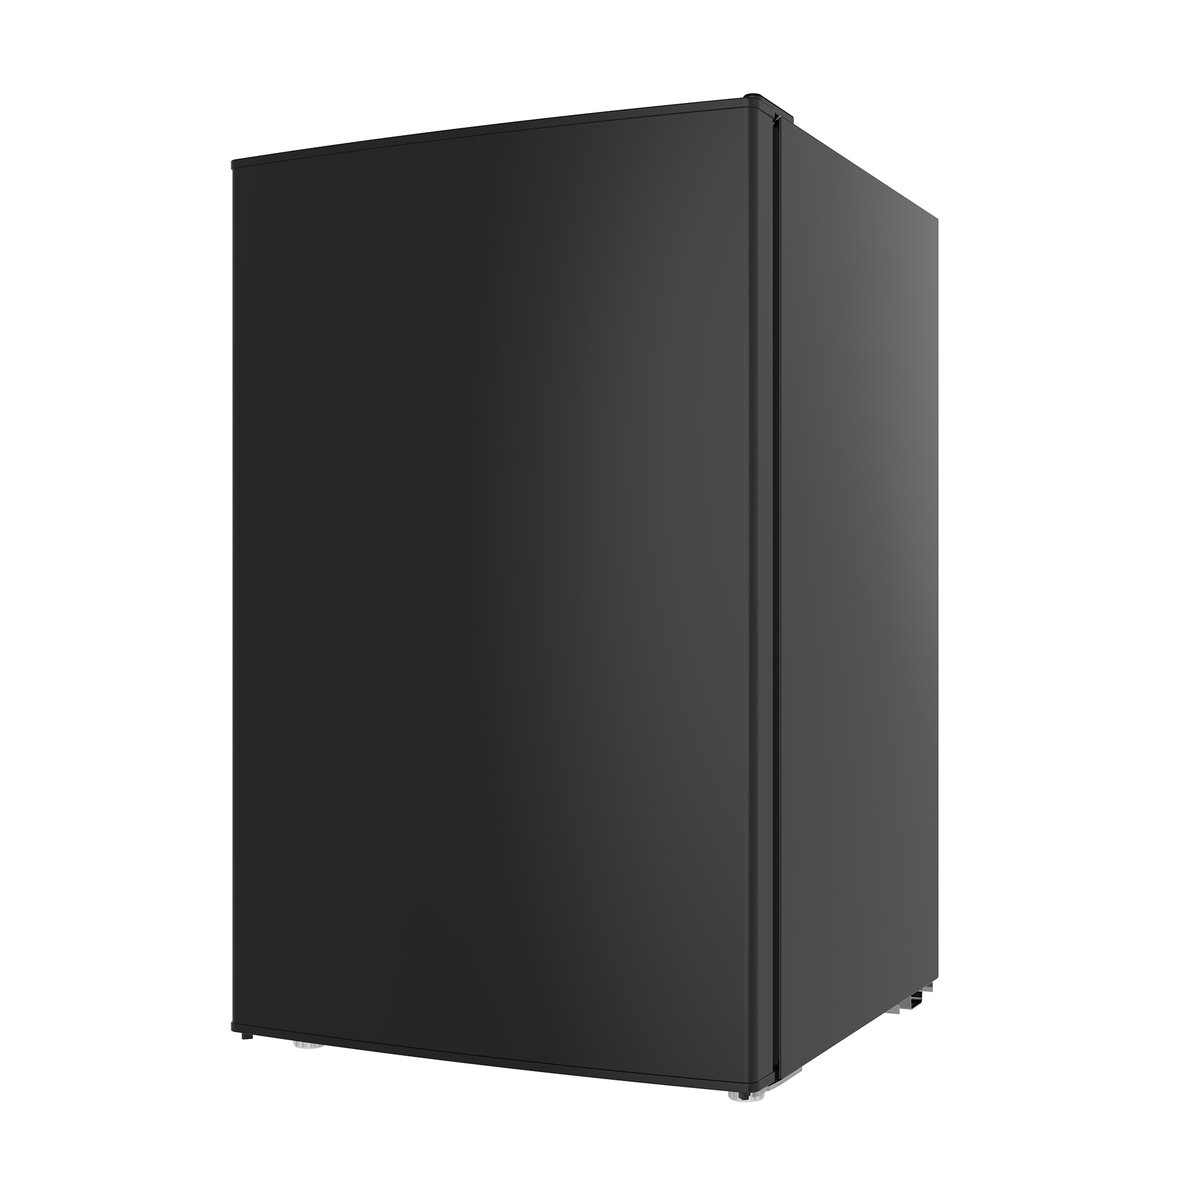 Kenmore 99059 Compact Mini Refrigerator, 4.5 cu. ft. in Black by Kenmore (Image #2)